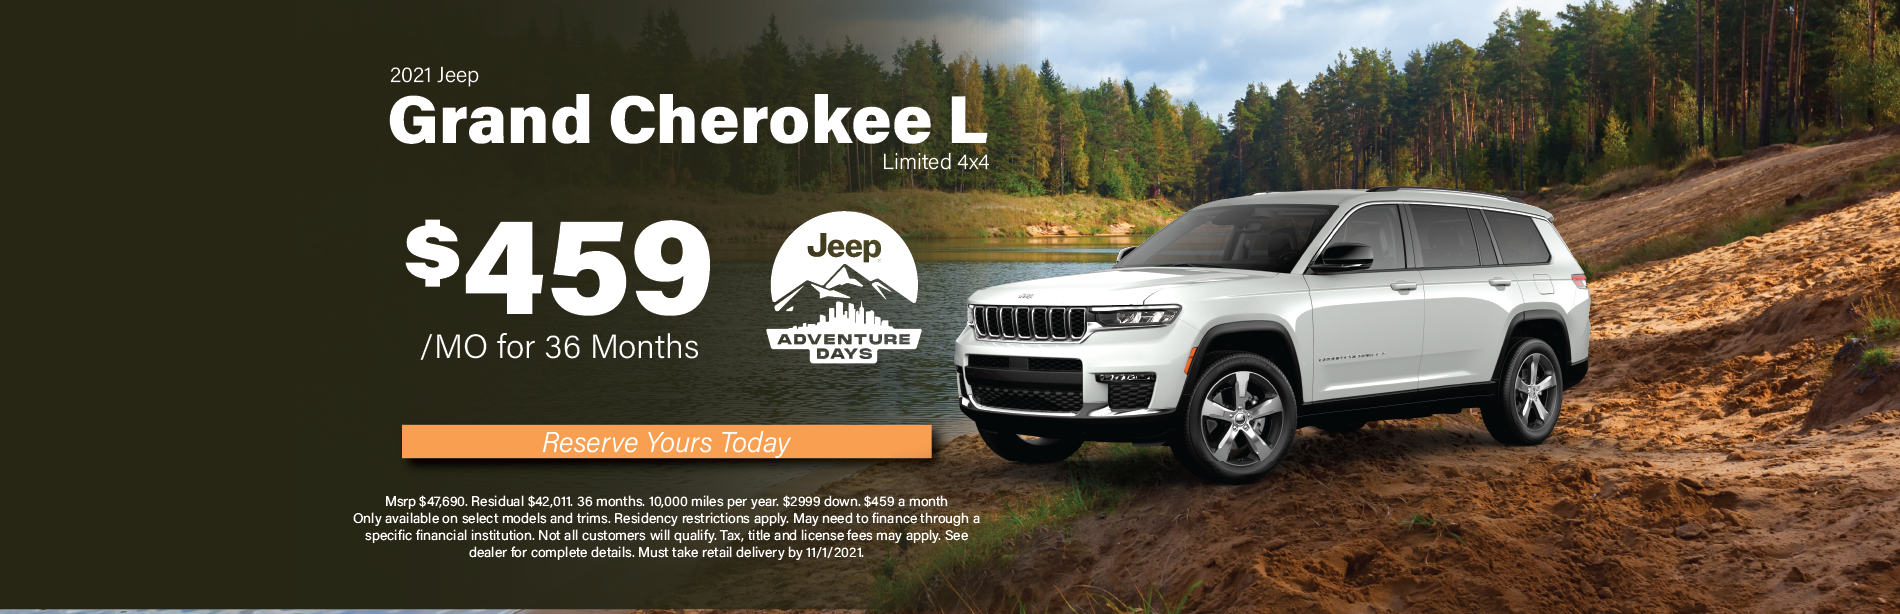 Grand Cherokee L Limited – Peterson Oct 2021